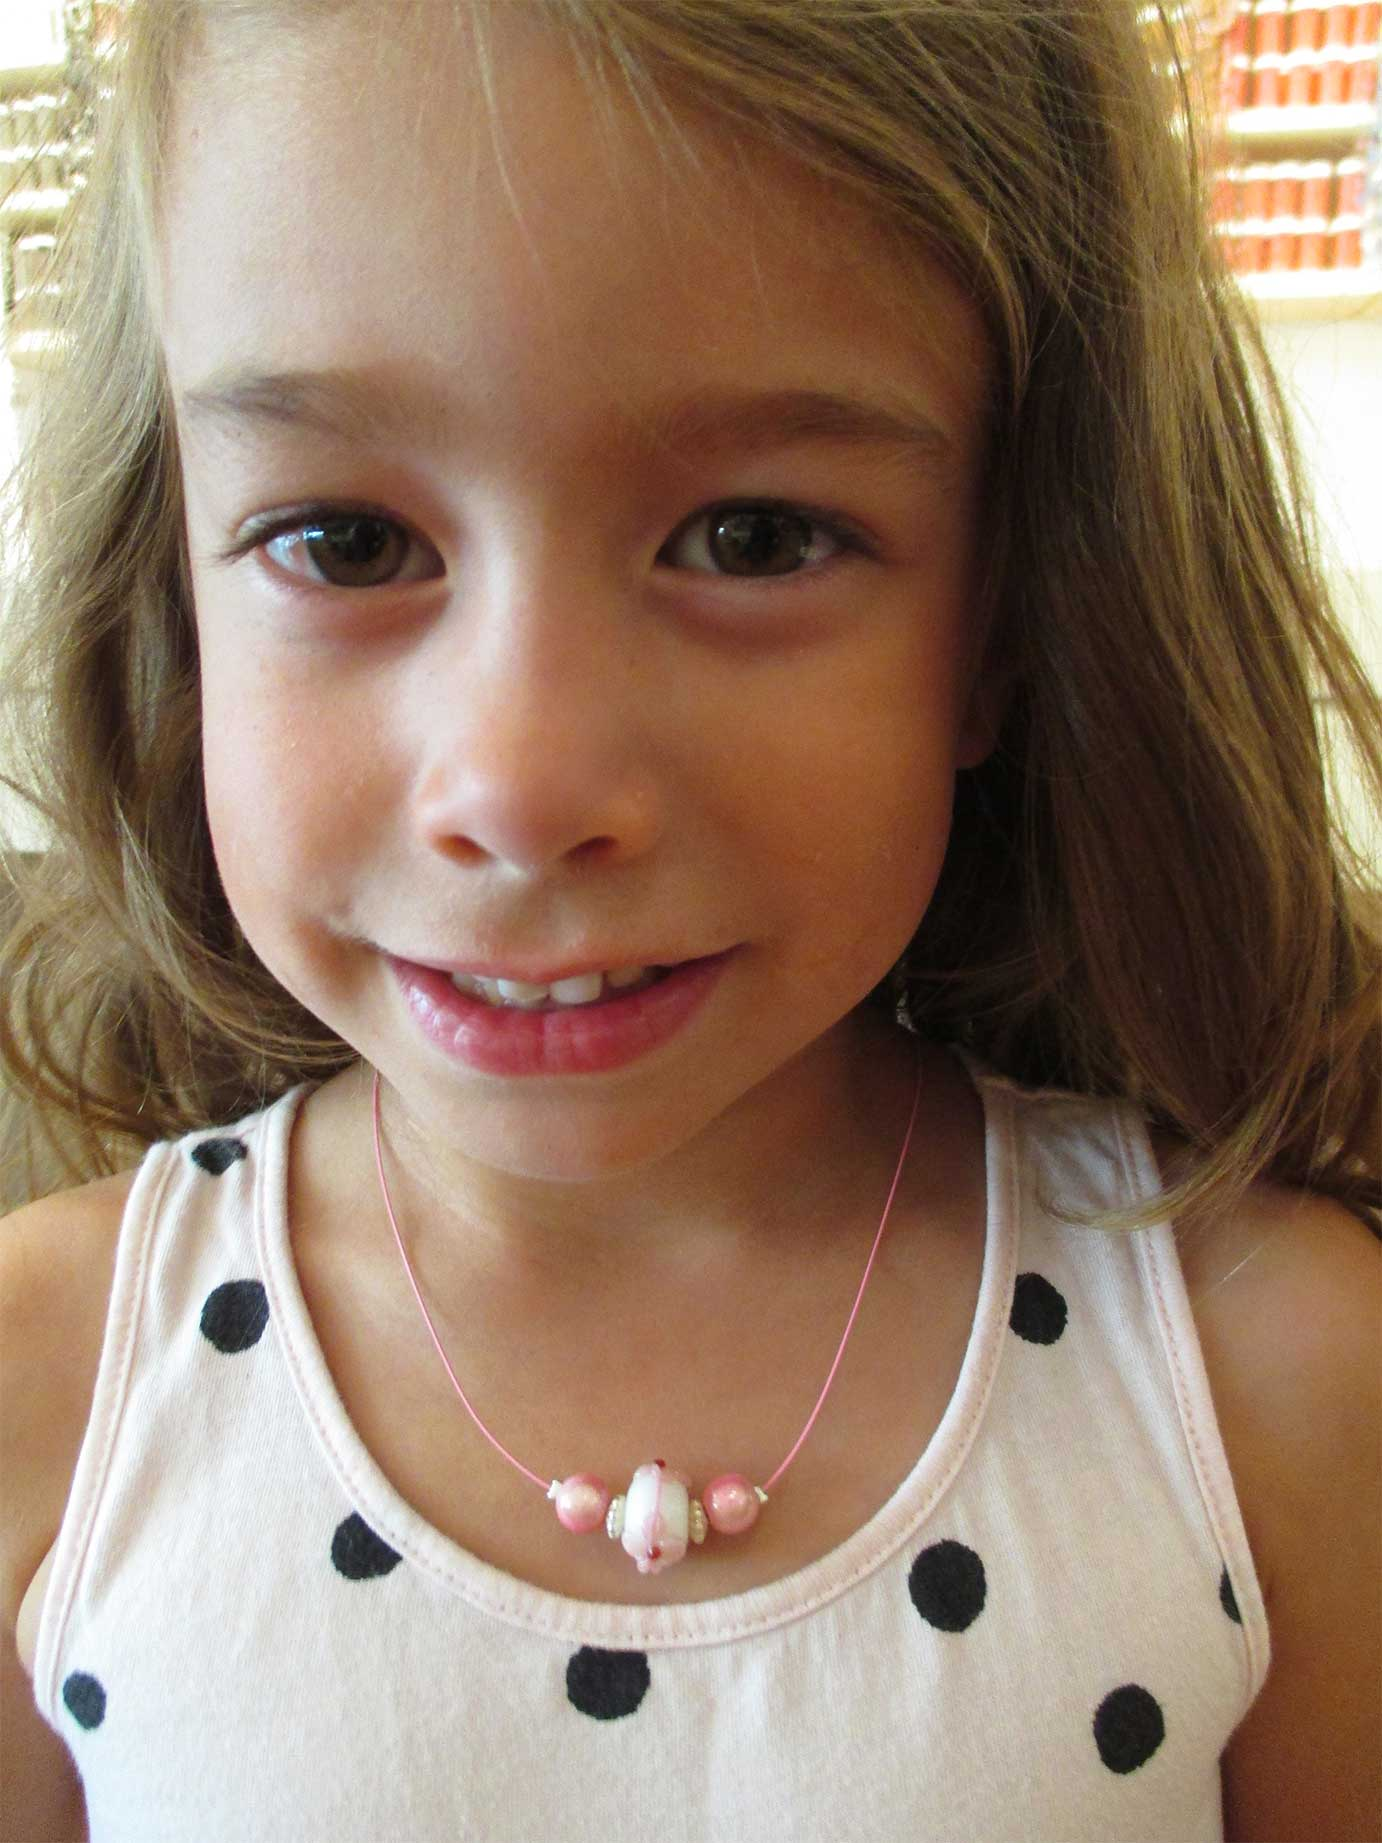 Girl wearing necklace